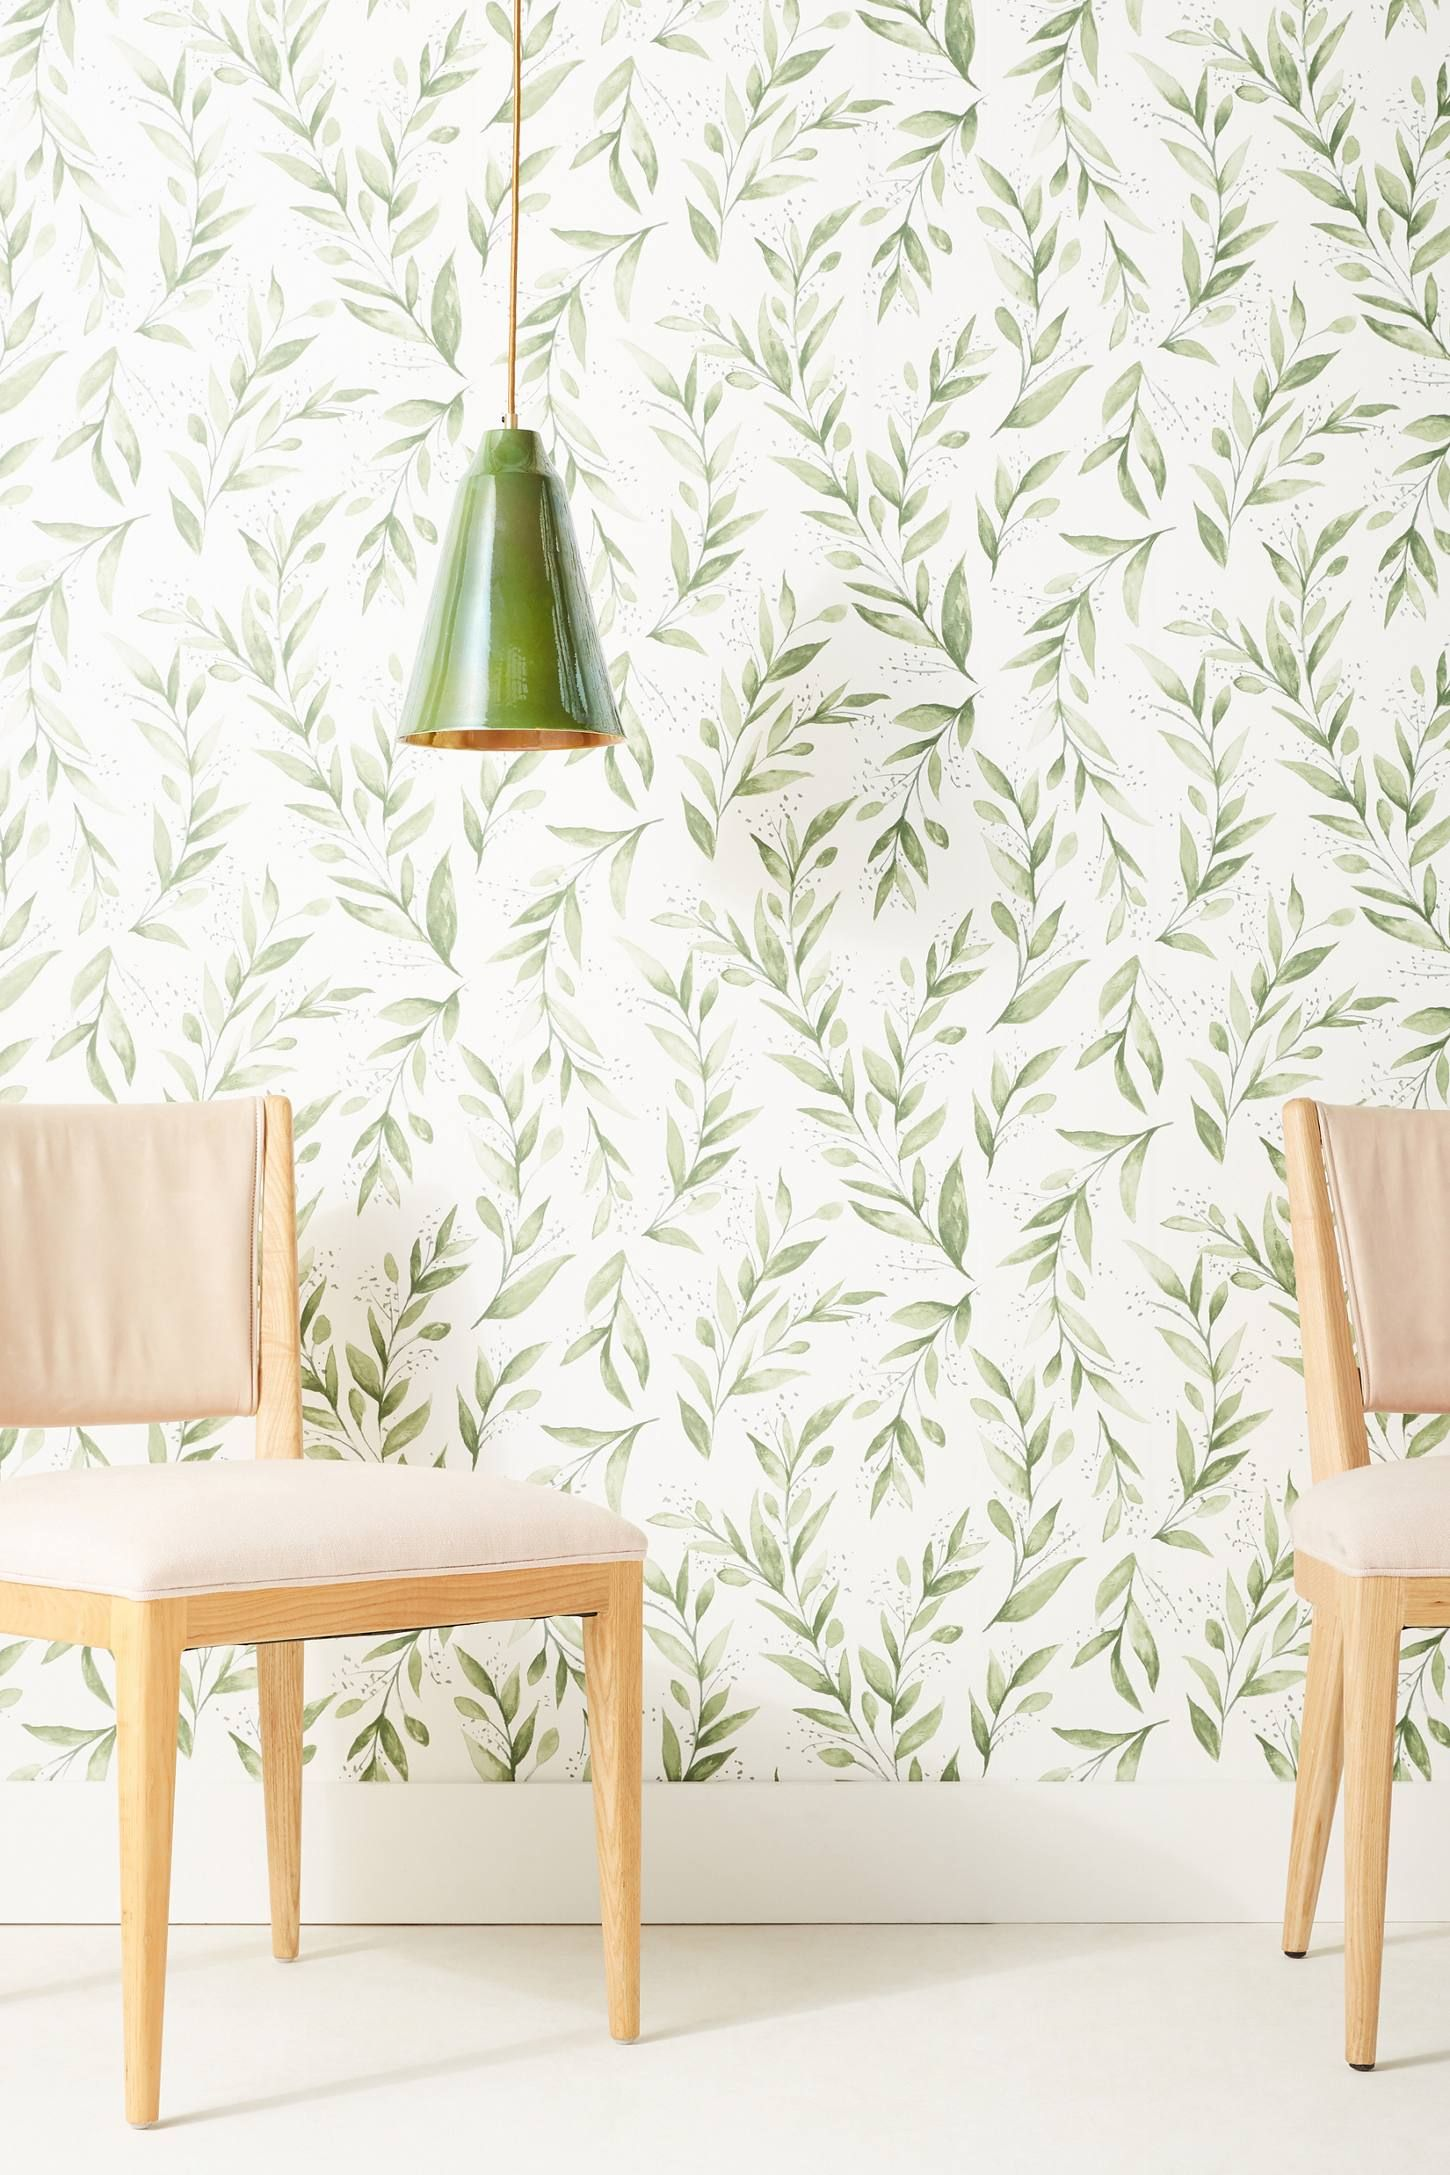 Shop The Olive Branch Wallpaper And More Anthropologie At Anthropologie Today Read Customer Reviews Discover Pr Wallpaper Decor Magnolia Homes Home Wallpaper